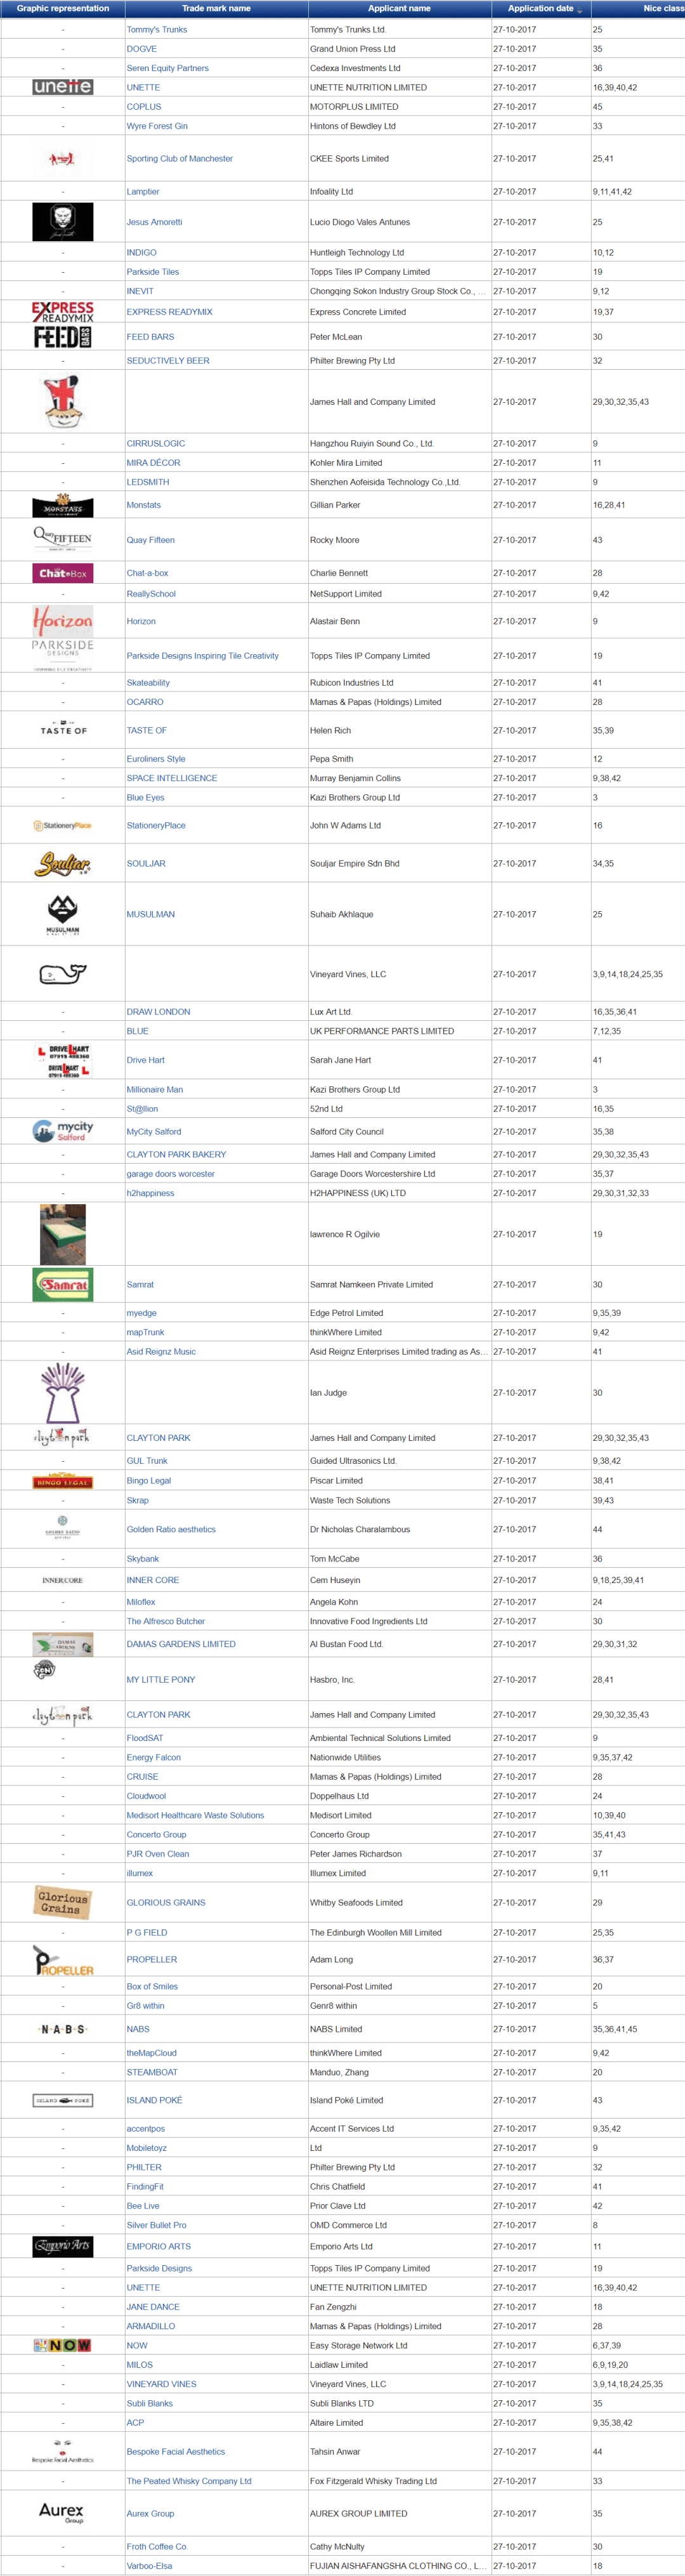 Trademark UK UK Trademark Applications Latest Filings with UK Patents Office 27 October 2017 2 2